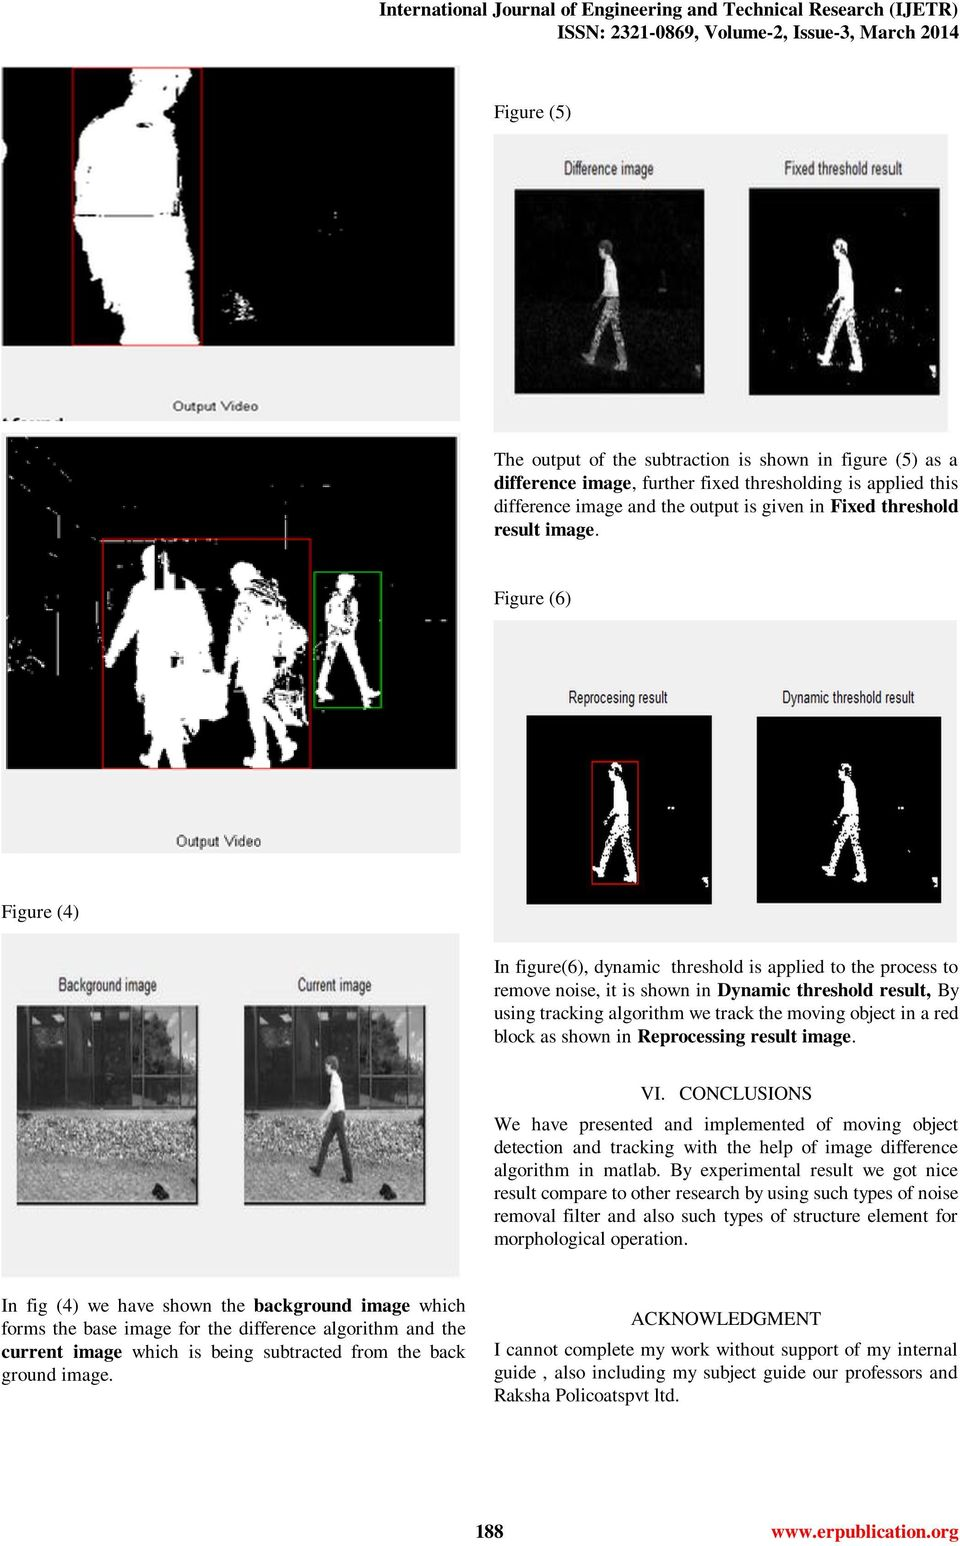 Human and Moving Object Detection and Tracking Using Image